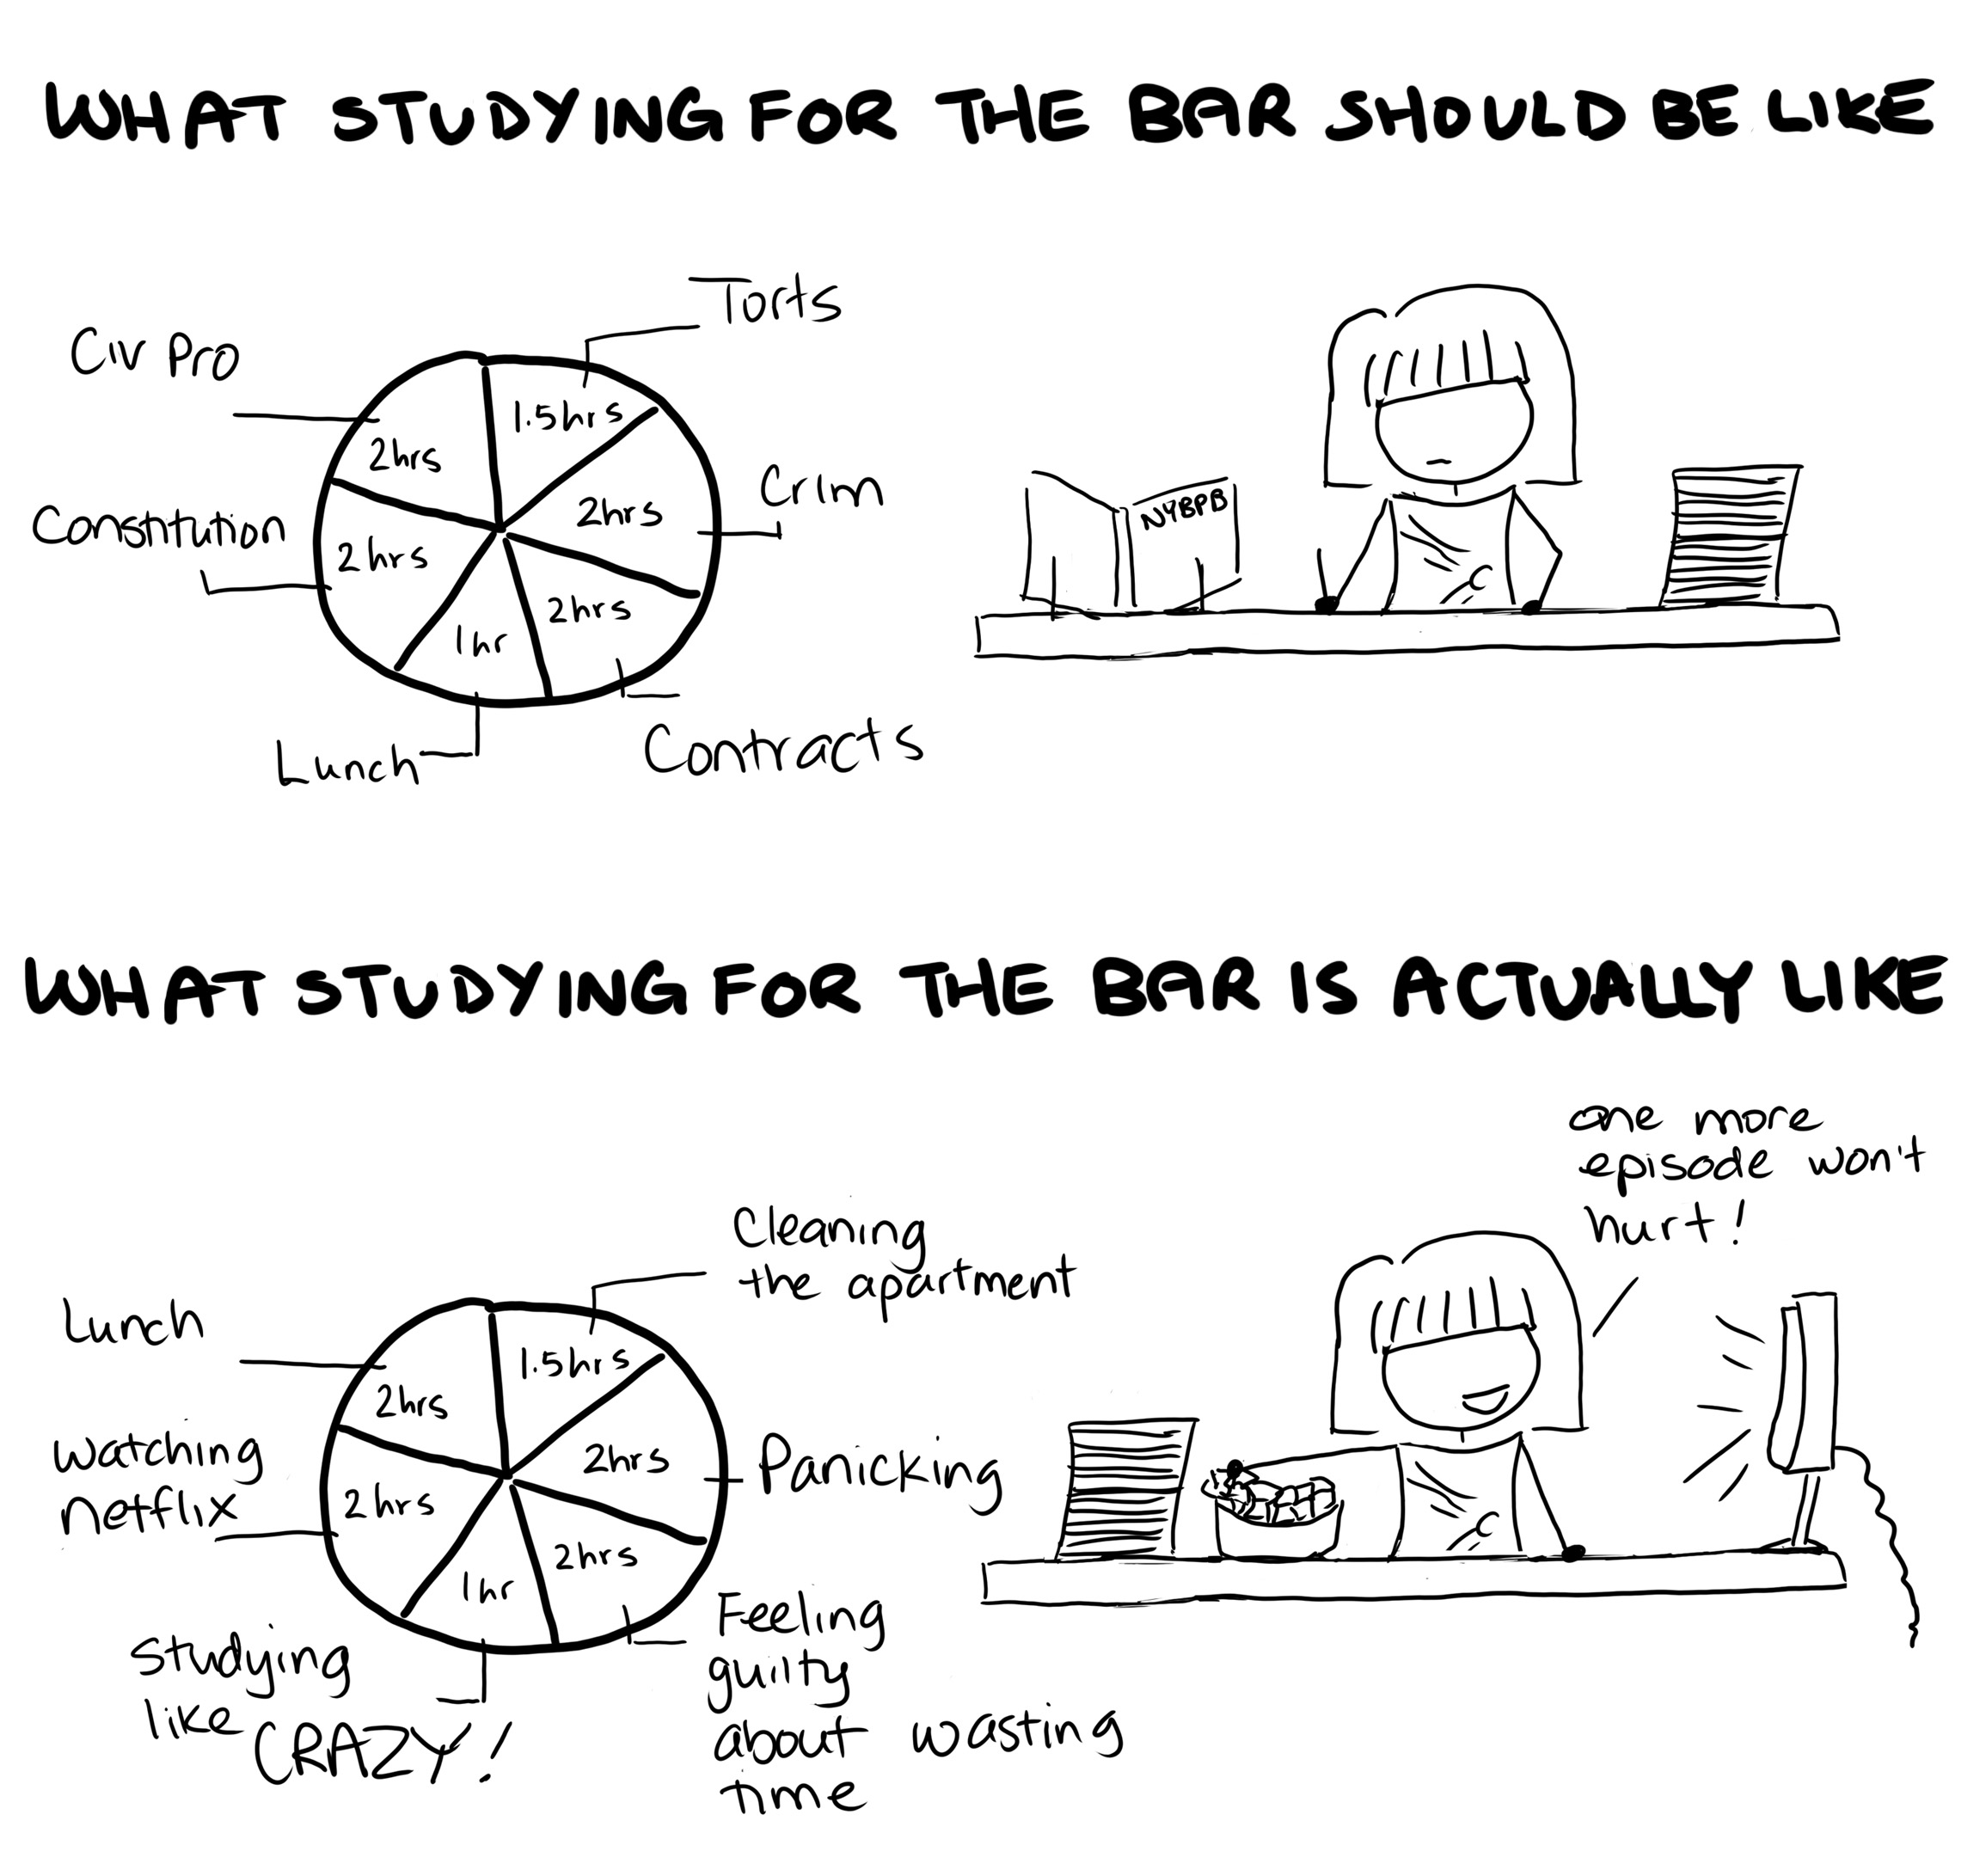 047 - Studying for the Bar